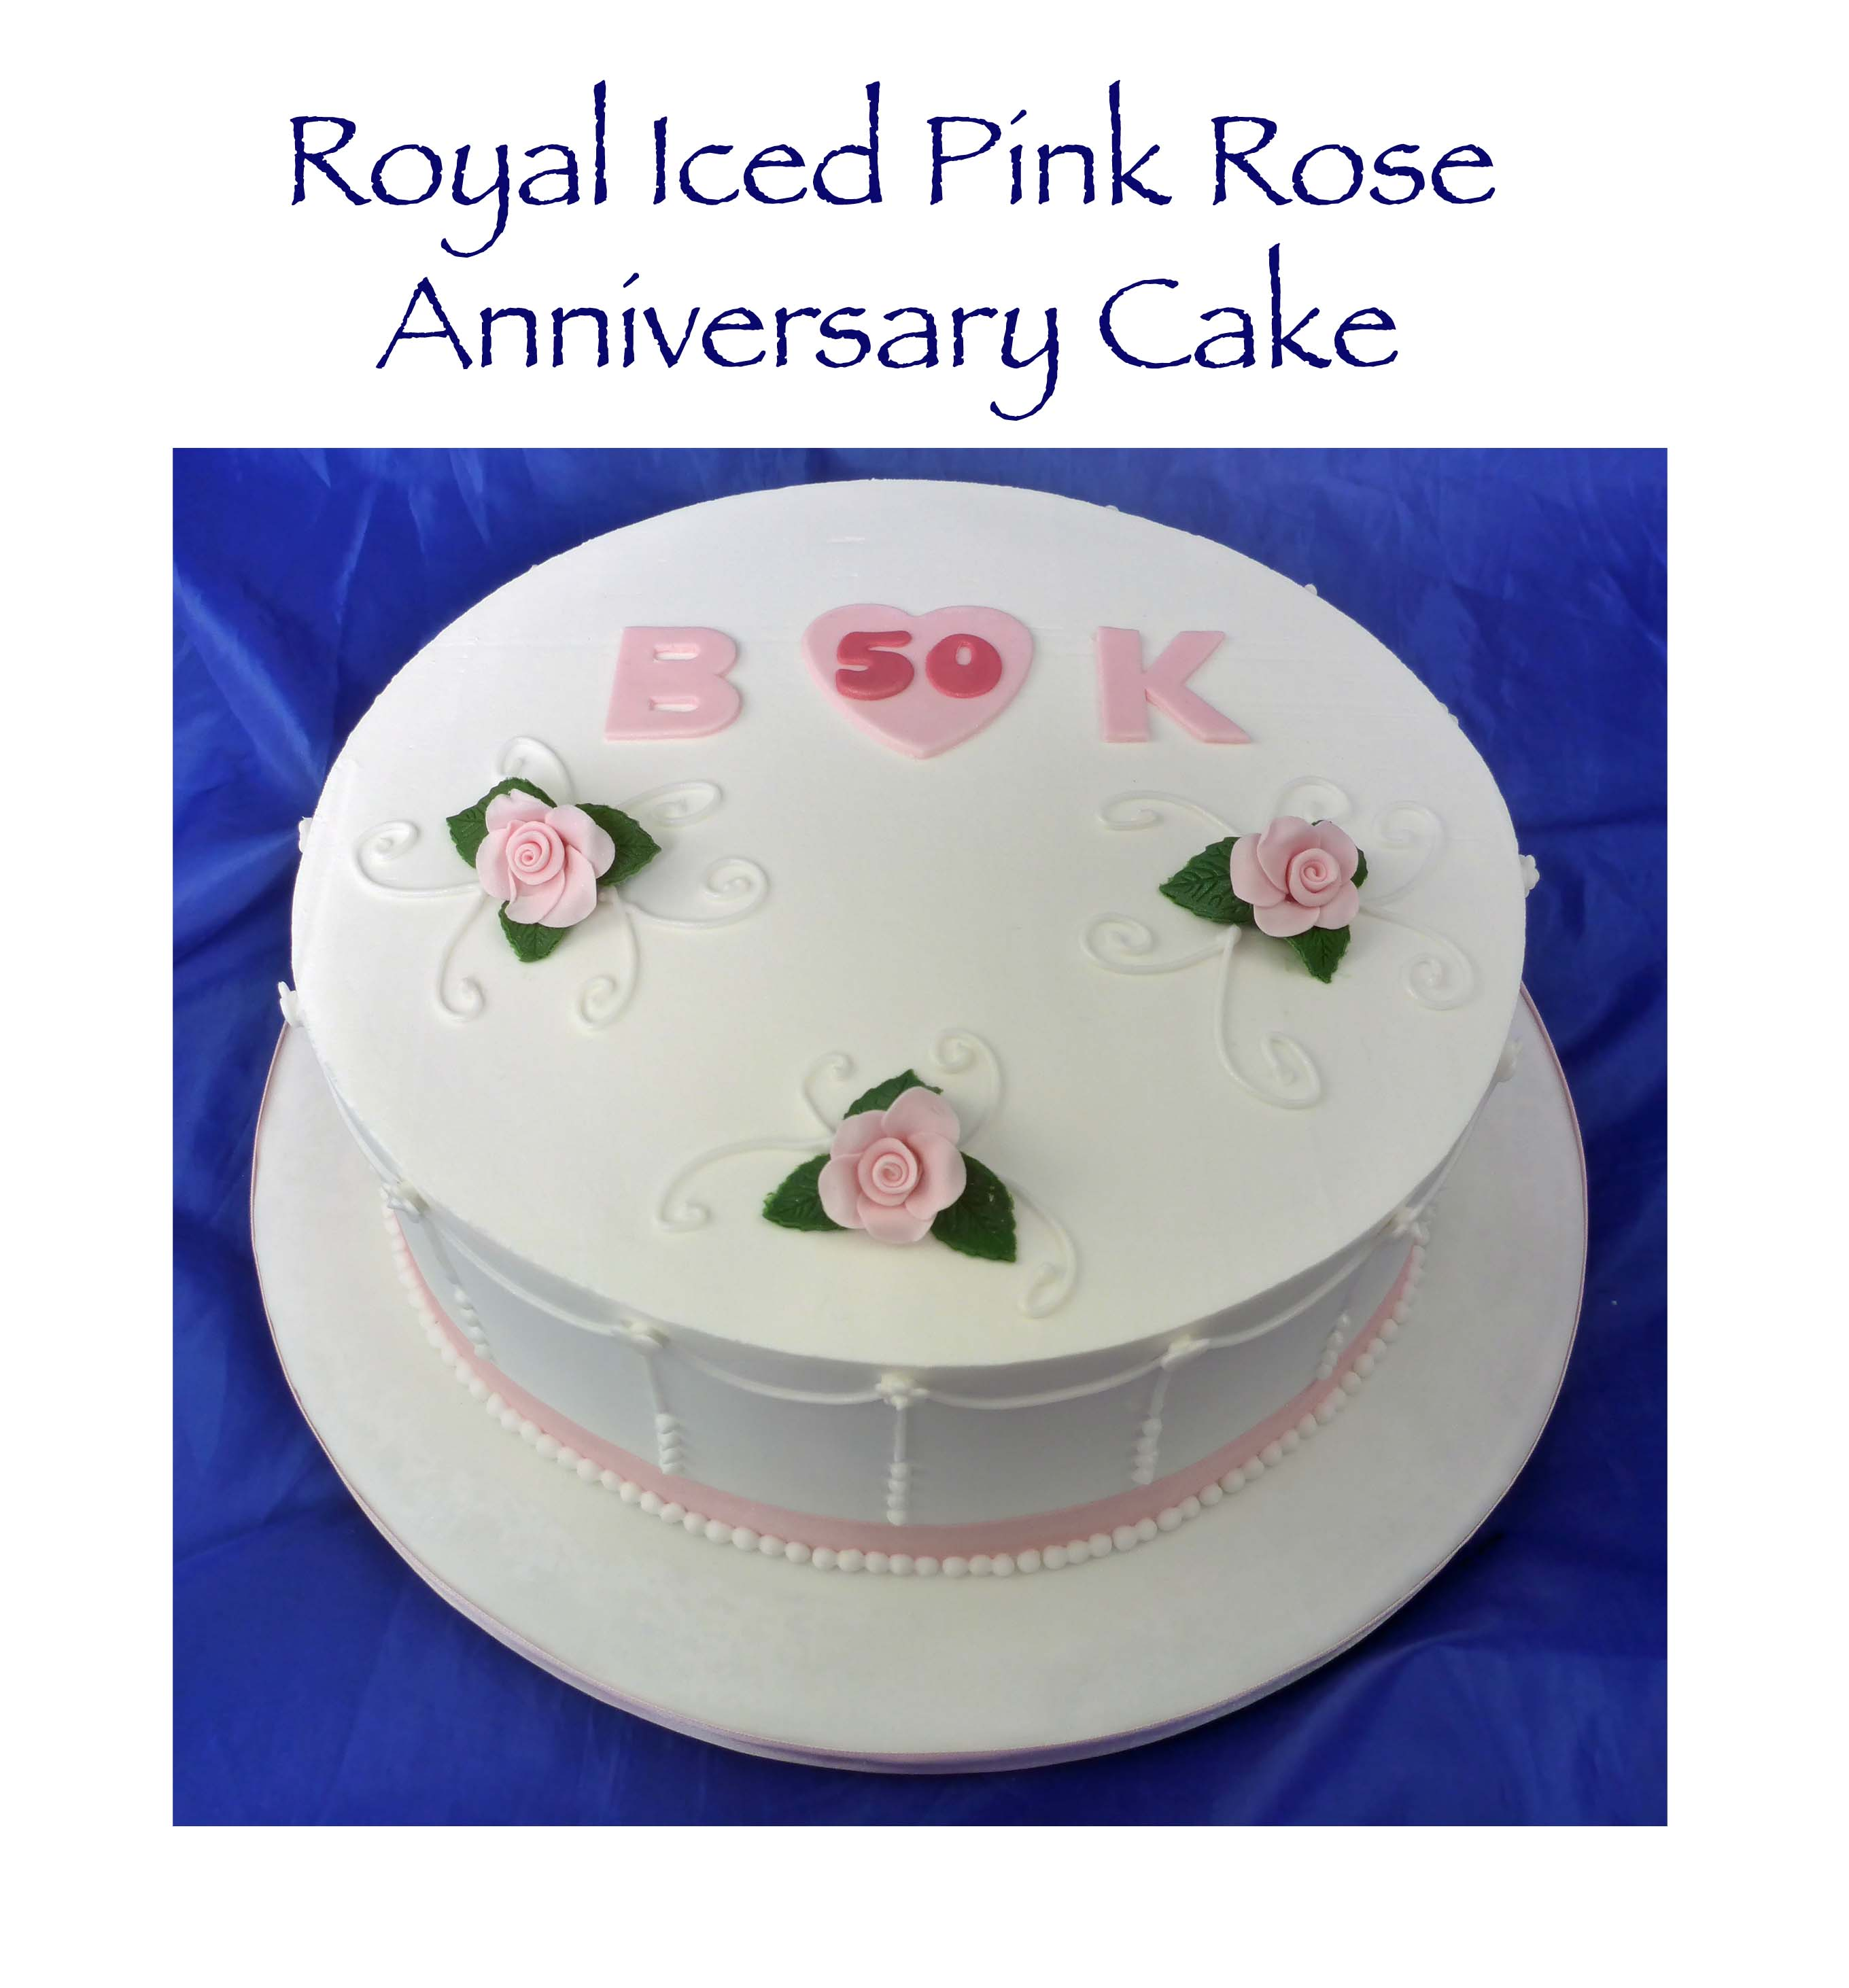 Royal Iced Pink Rose Anniversary Cake